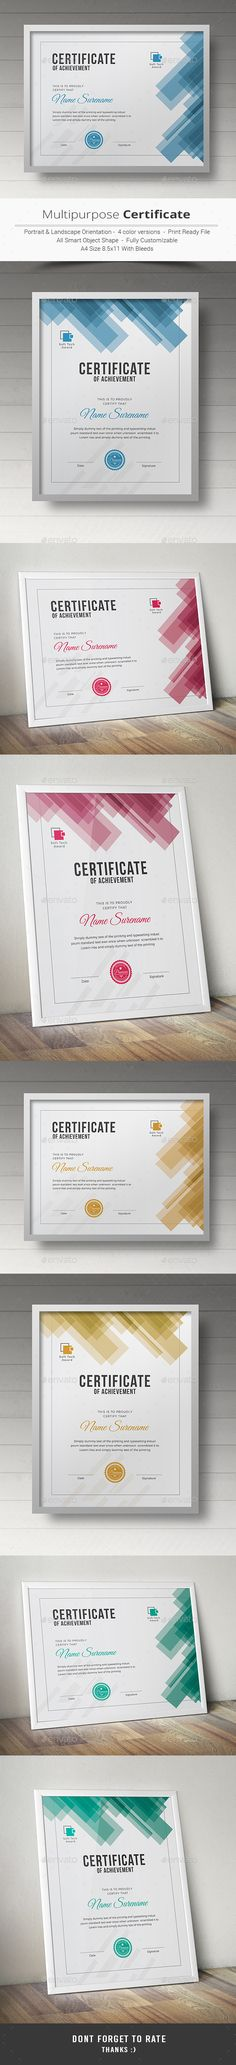 certificate This Multipurpose Certificates is Customizable and ready to print. A help file is included with the main file. 3 different color and easy to modify. Just select the global color and change the color in a single click. Certificate Layout, Certificate Templates, Certificate Of Appreciation, Certificate Of Achievement, Stationery Templates, Stationery Design, Graphic Design Templates, Print Templates, Magazine Layout Design